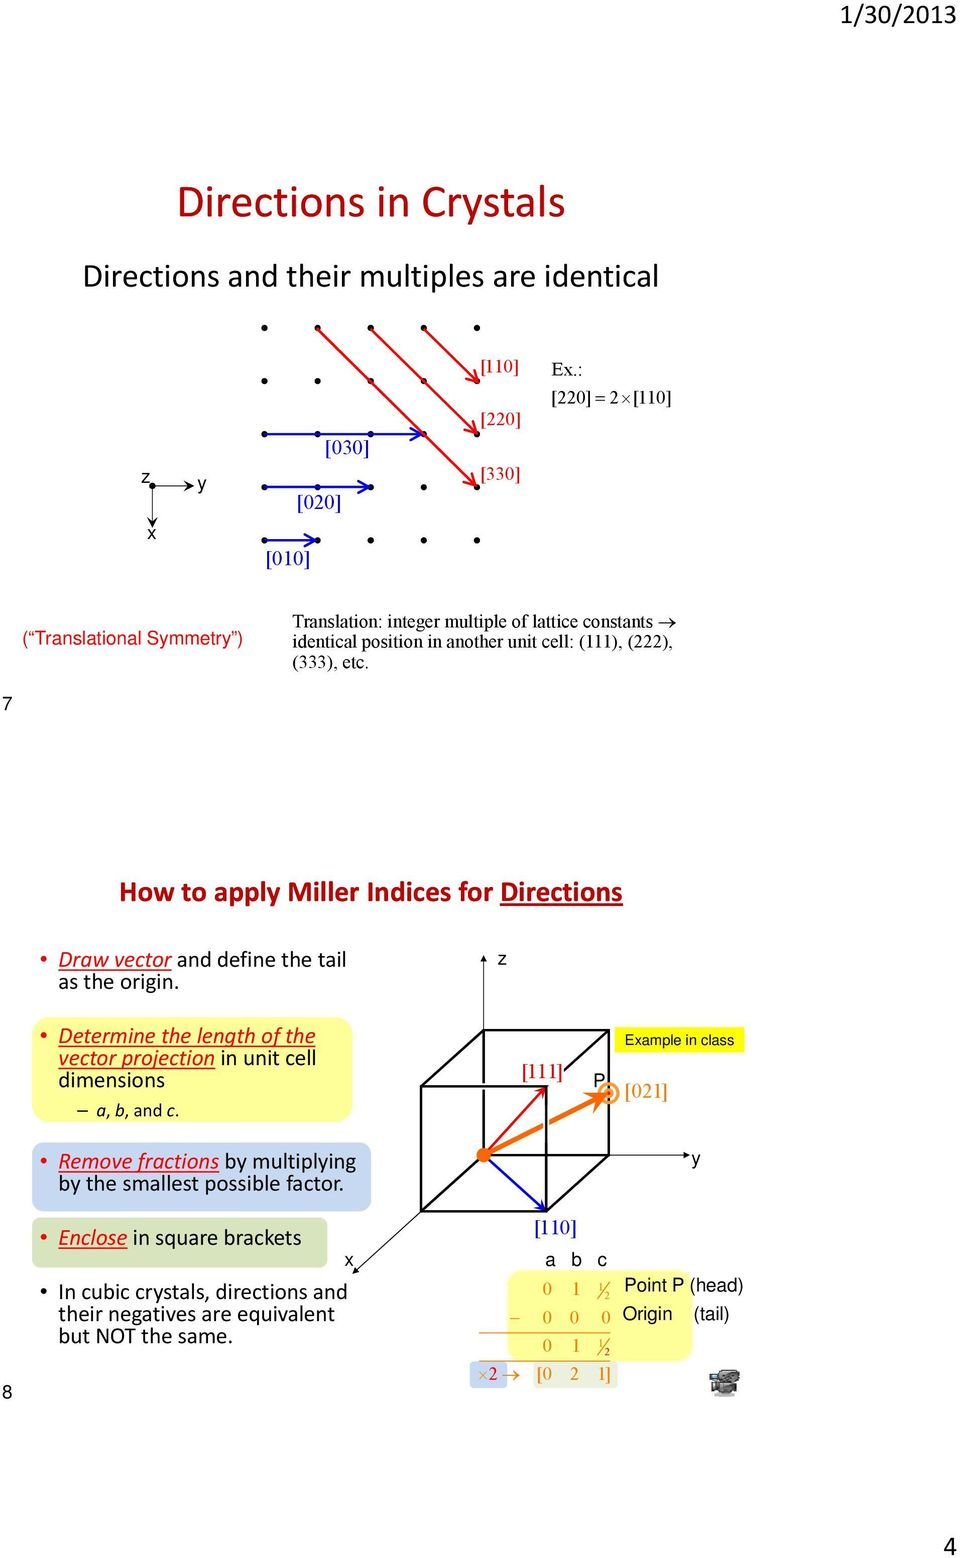 7 How to ppl Miller Indices for Directions Drw vector nd define the til s the origin. Dt Determine the length of the vector projection in unit cell dimensions, b, nd c.